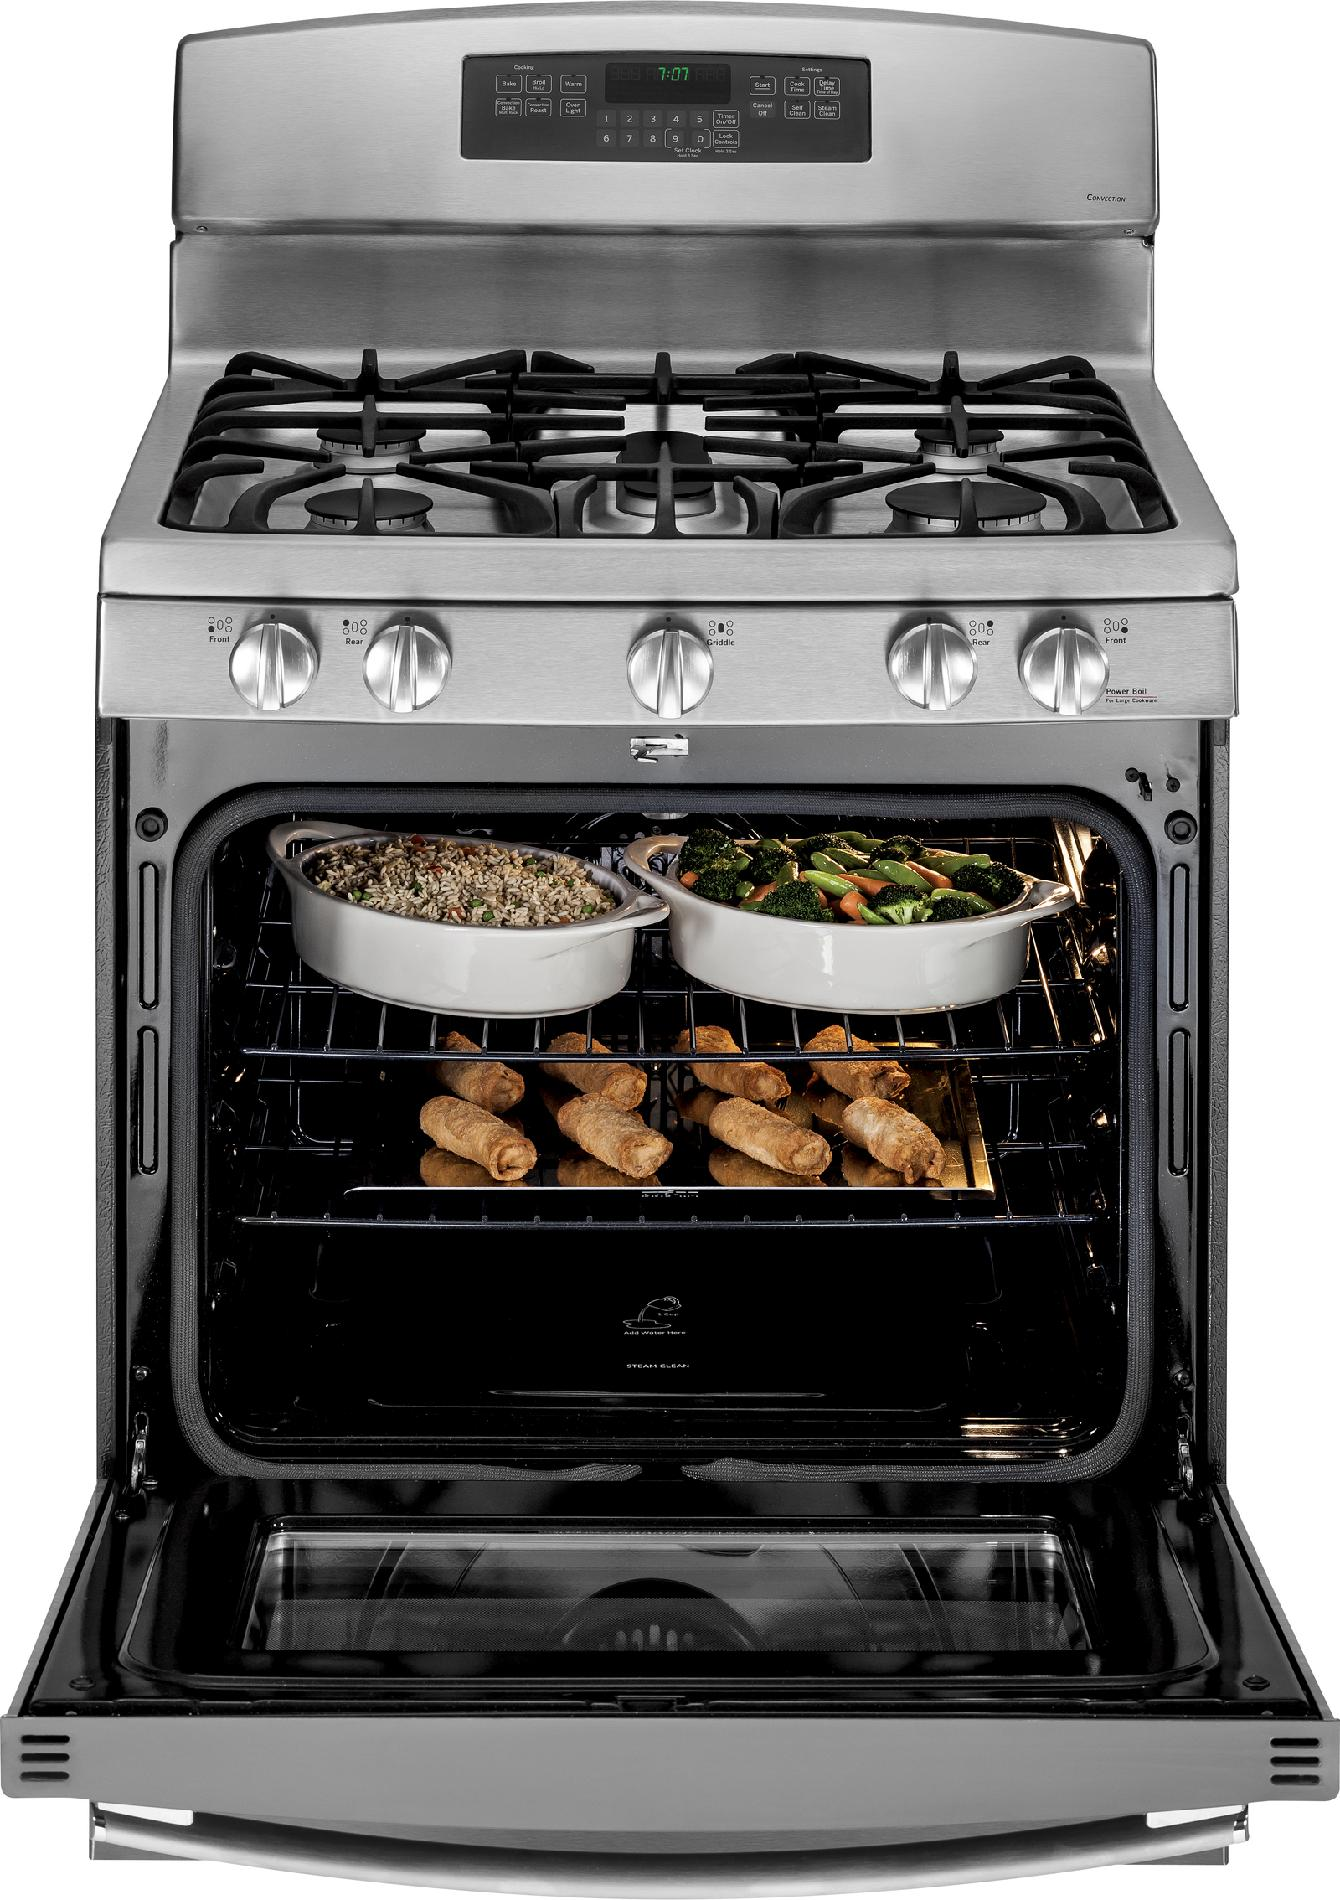 GE Appliances 5.6 cu. ft. Gas Range w/ Convection - Stainless Steel